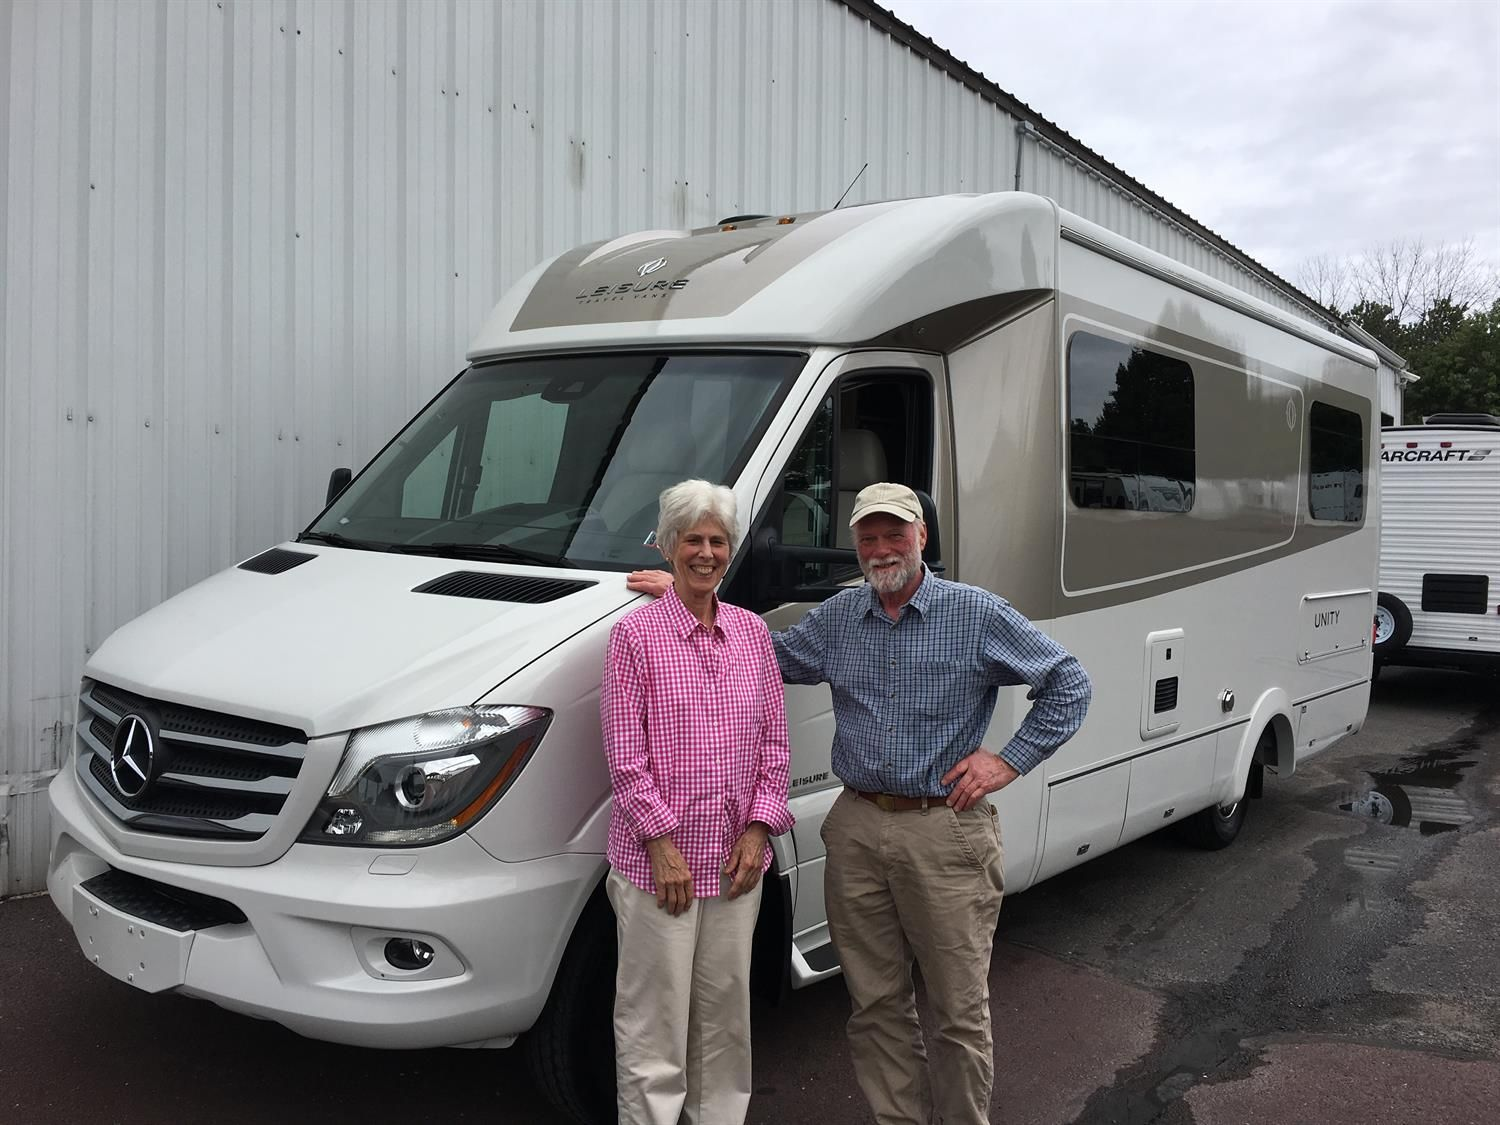 Erik And Pam We Appreciate Your Business Wishing You Many Miles Of Smiles From All Of Us Here At Fretz Rv And Rick Hand Recreational Vehicles Rv Vehicles